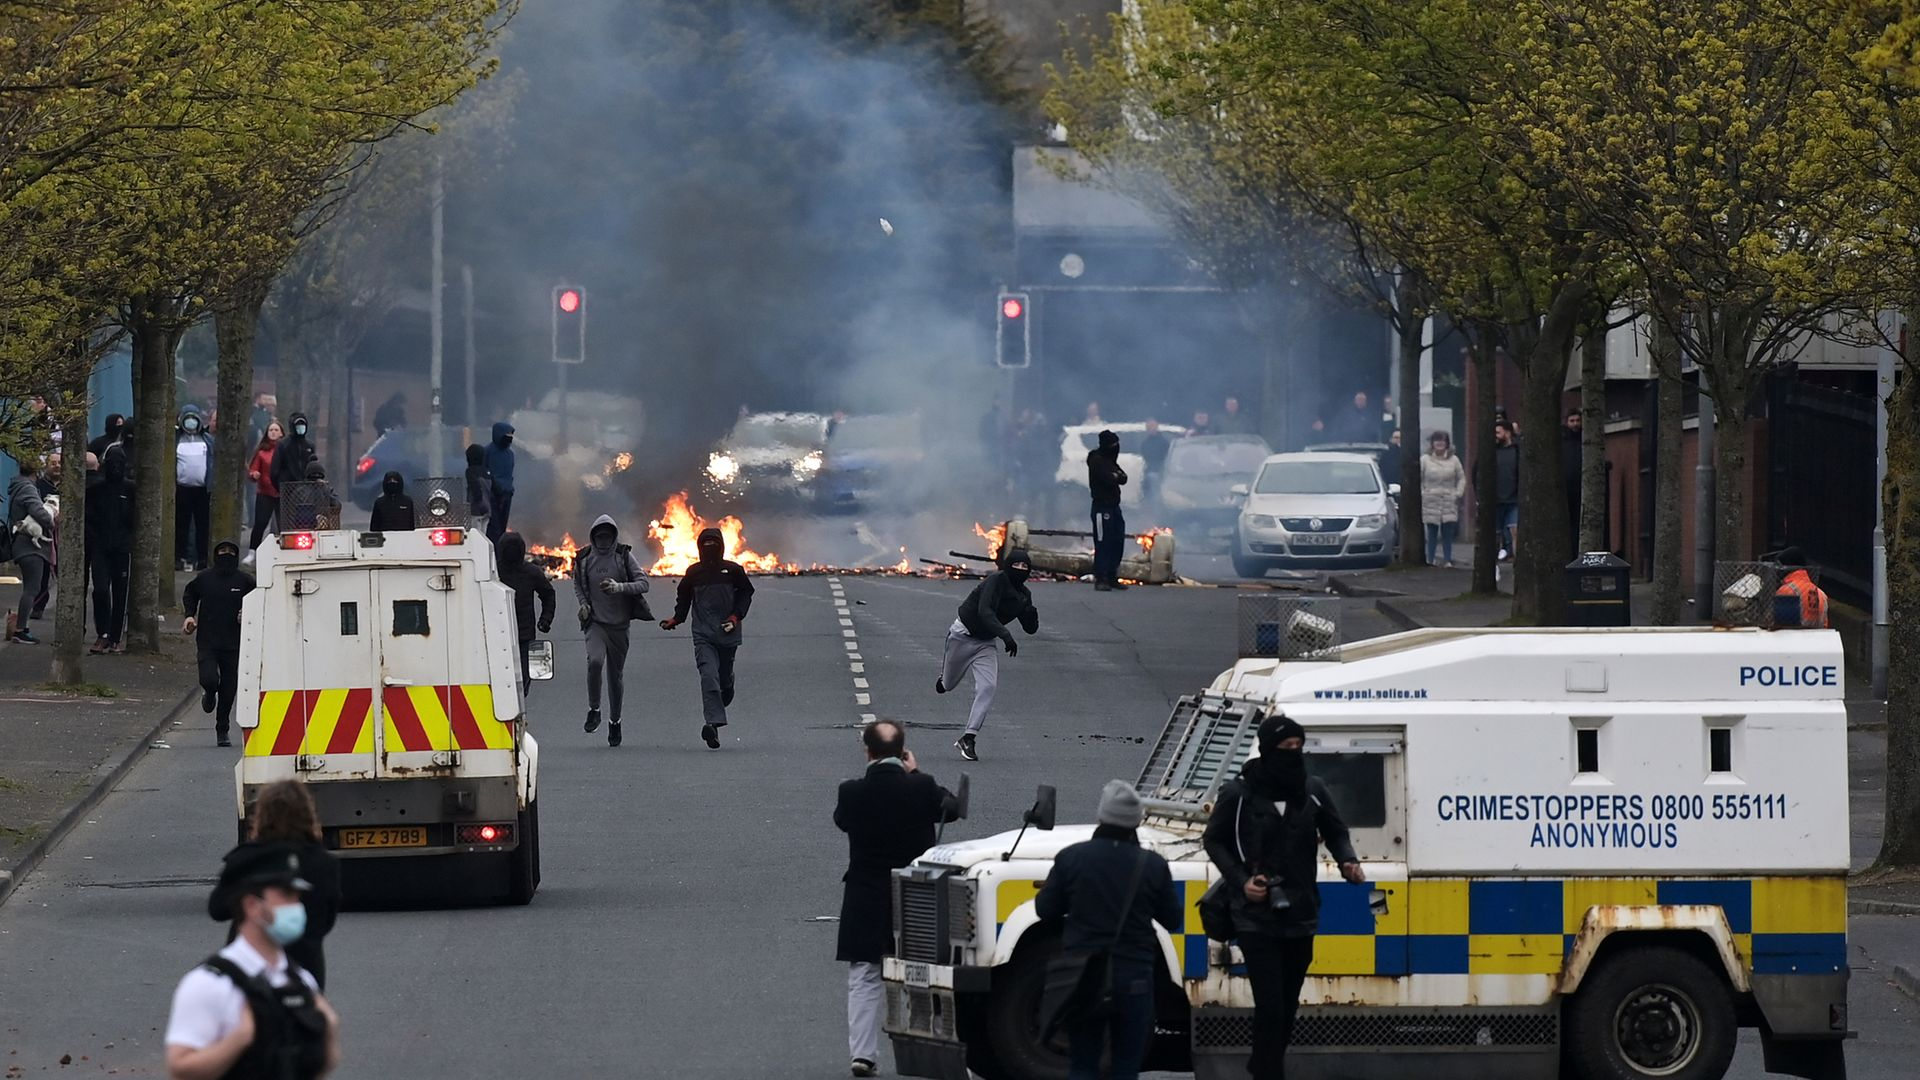 Loyalists light fires and throw projectiles at police in Belfast, amid tensions over the Protocol, in April 2021 - Credit: Getty Images